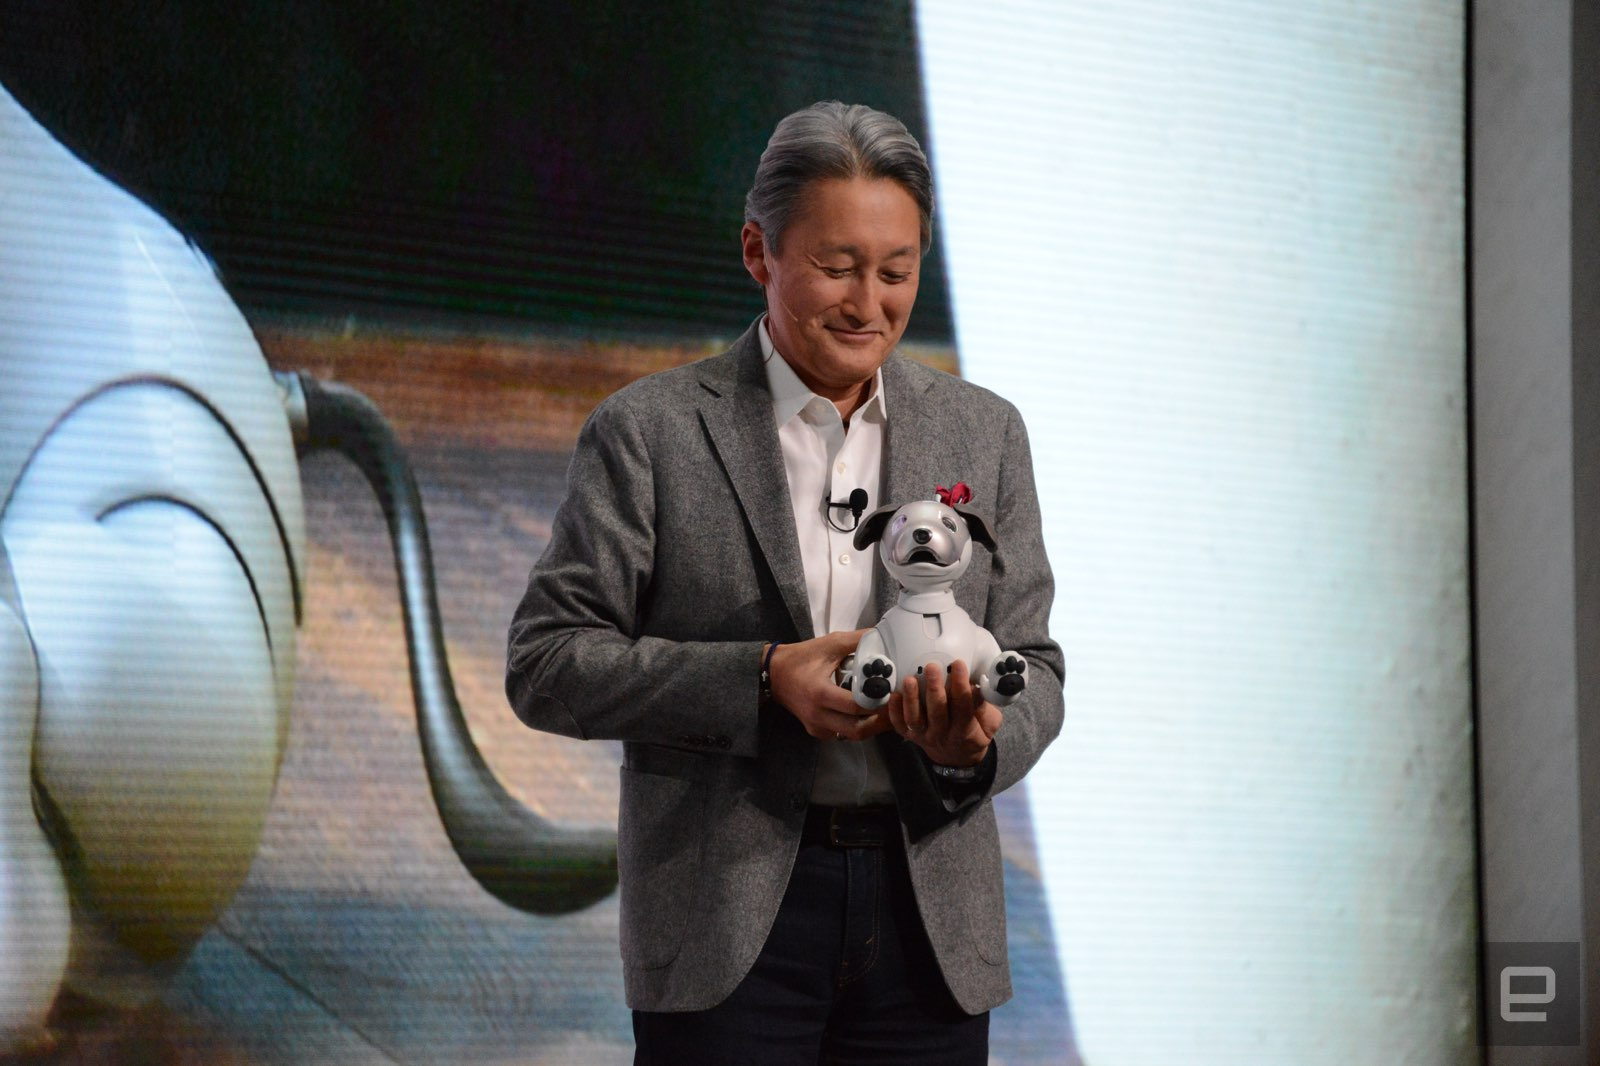 Video: aquí tienes resumida en 5 minutos la conferencia de Sony en CES 2018